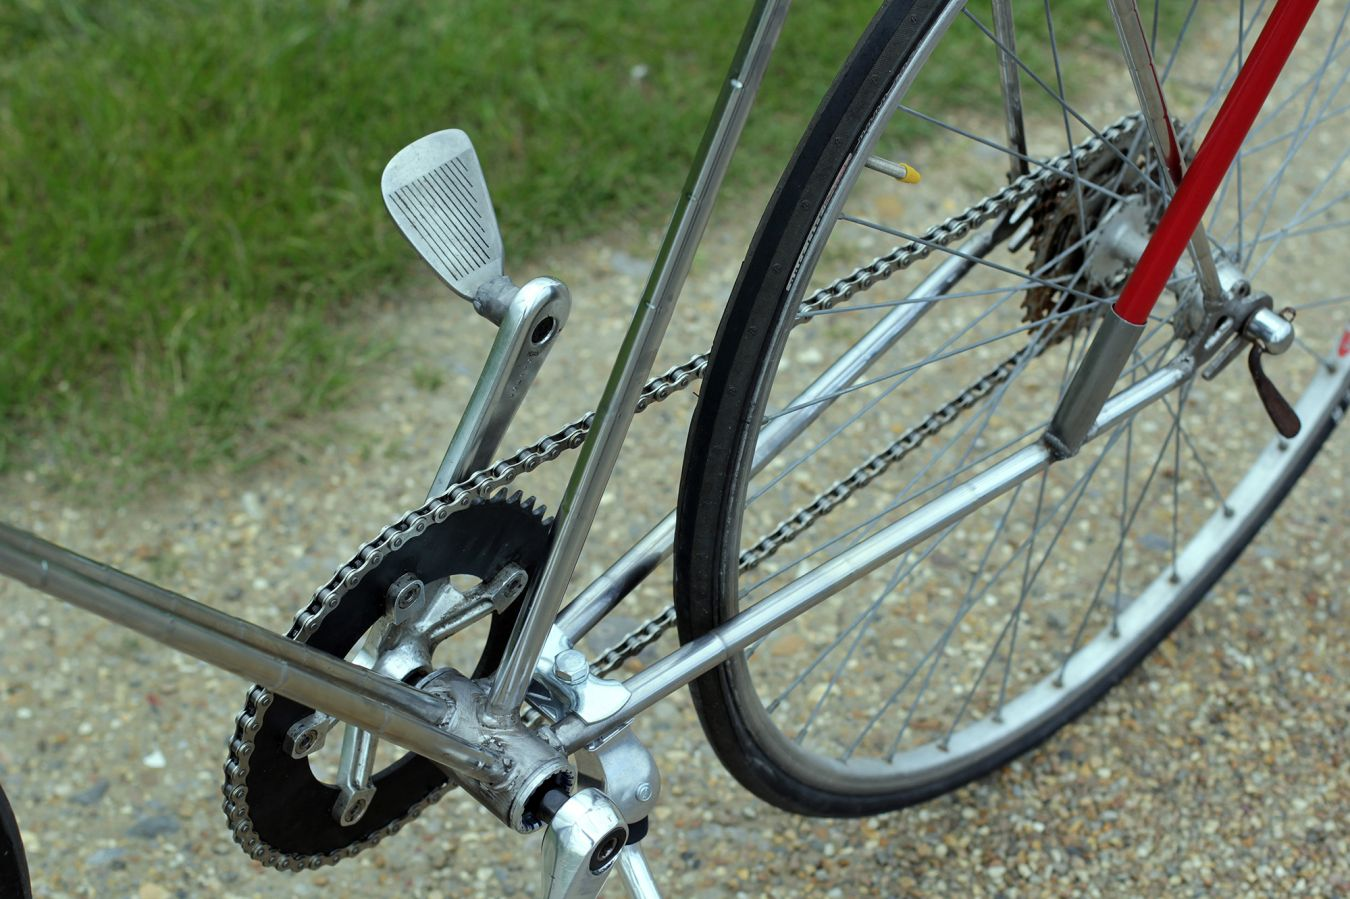 The bike\'s pedals are made from the golf club heads